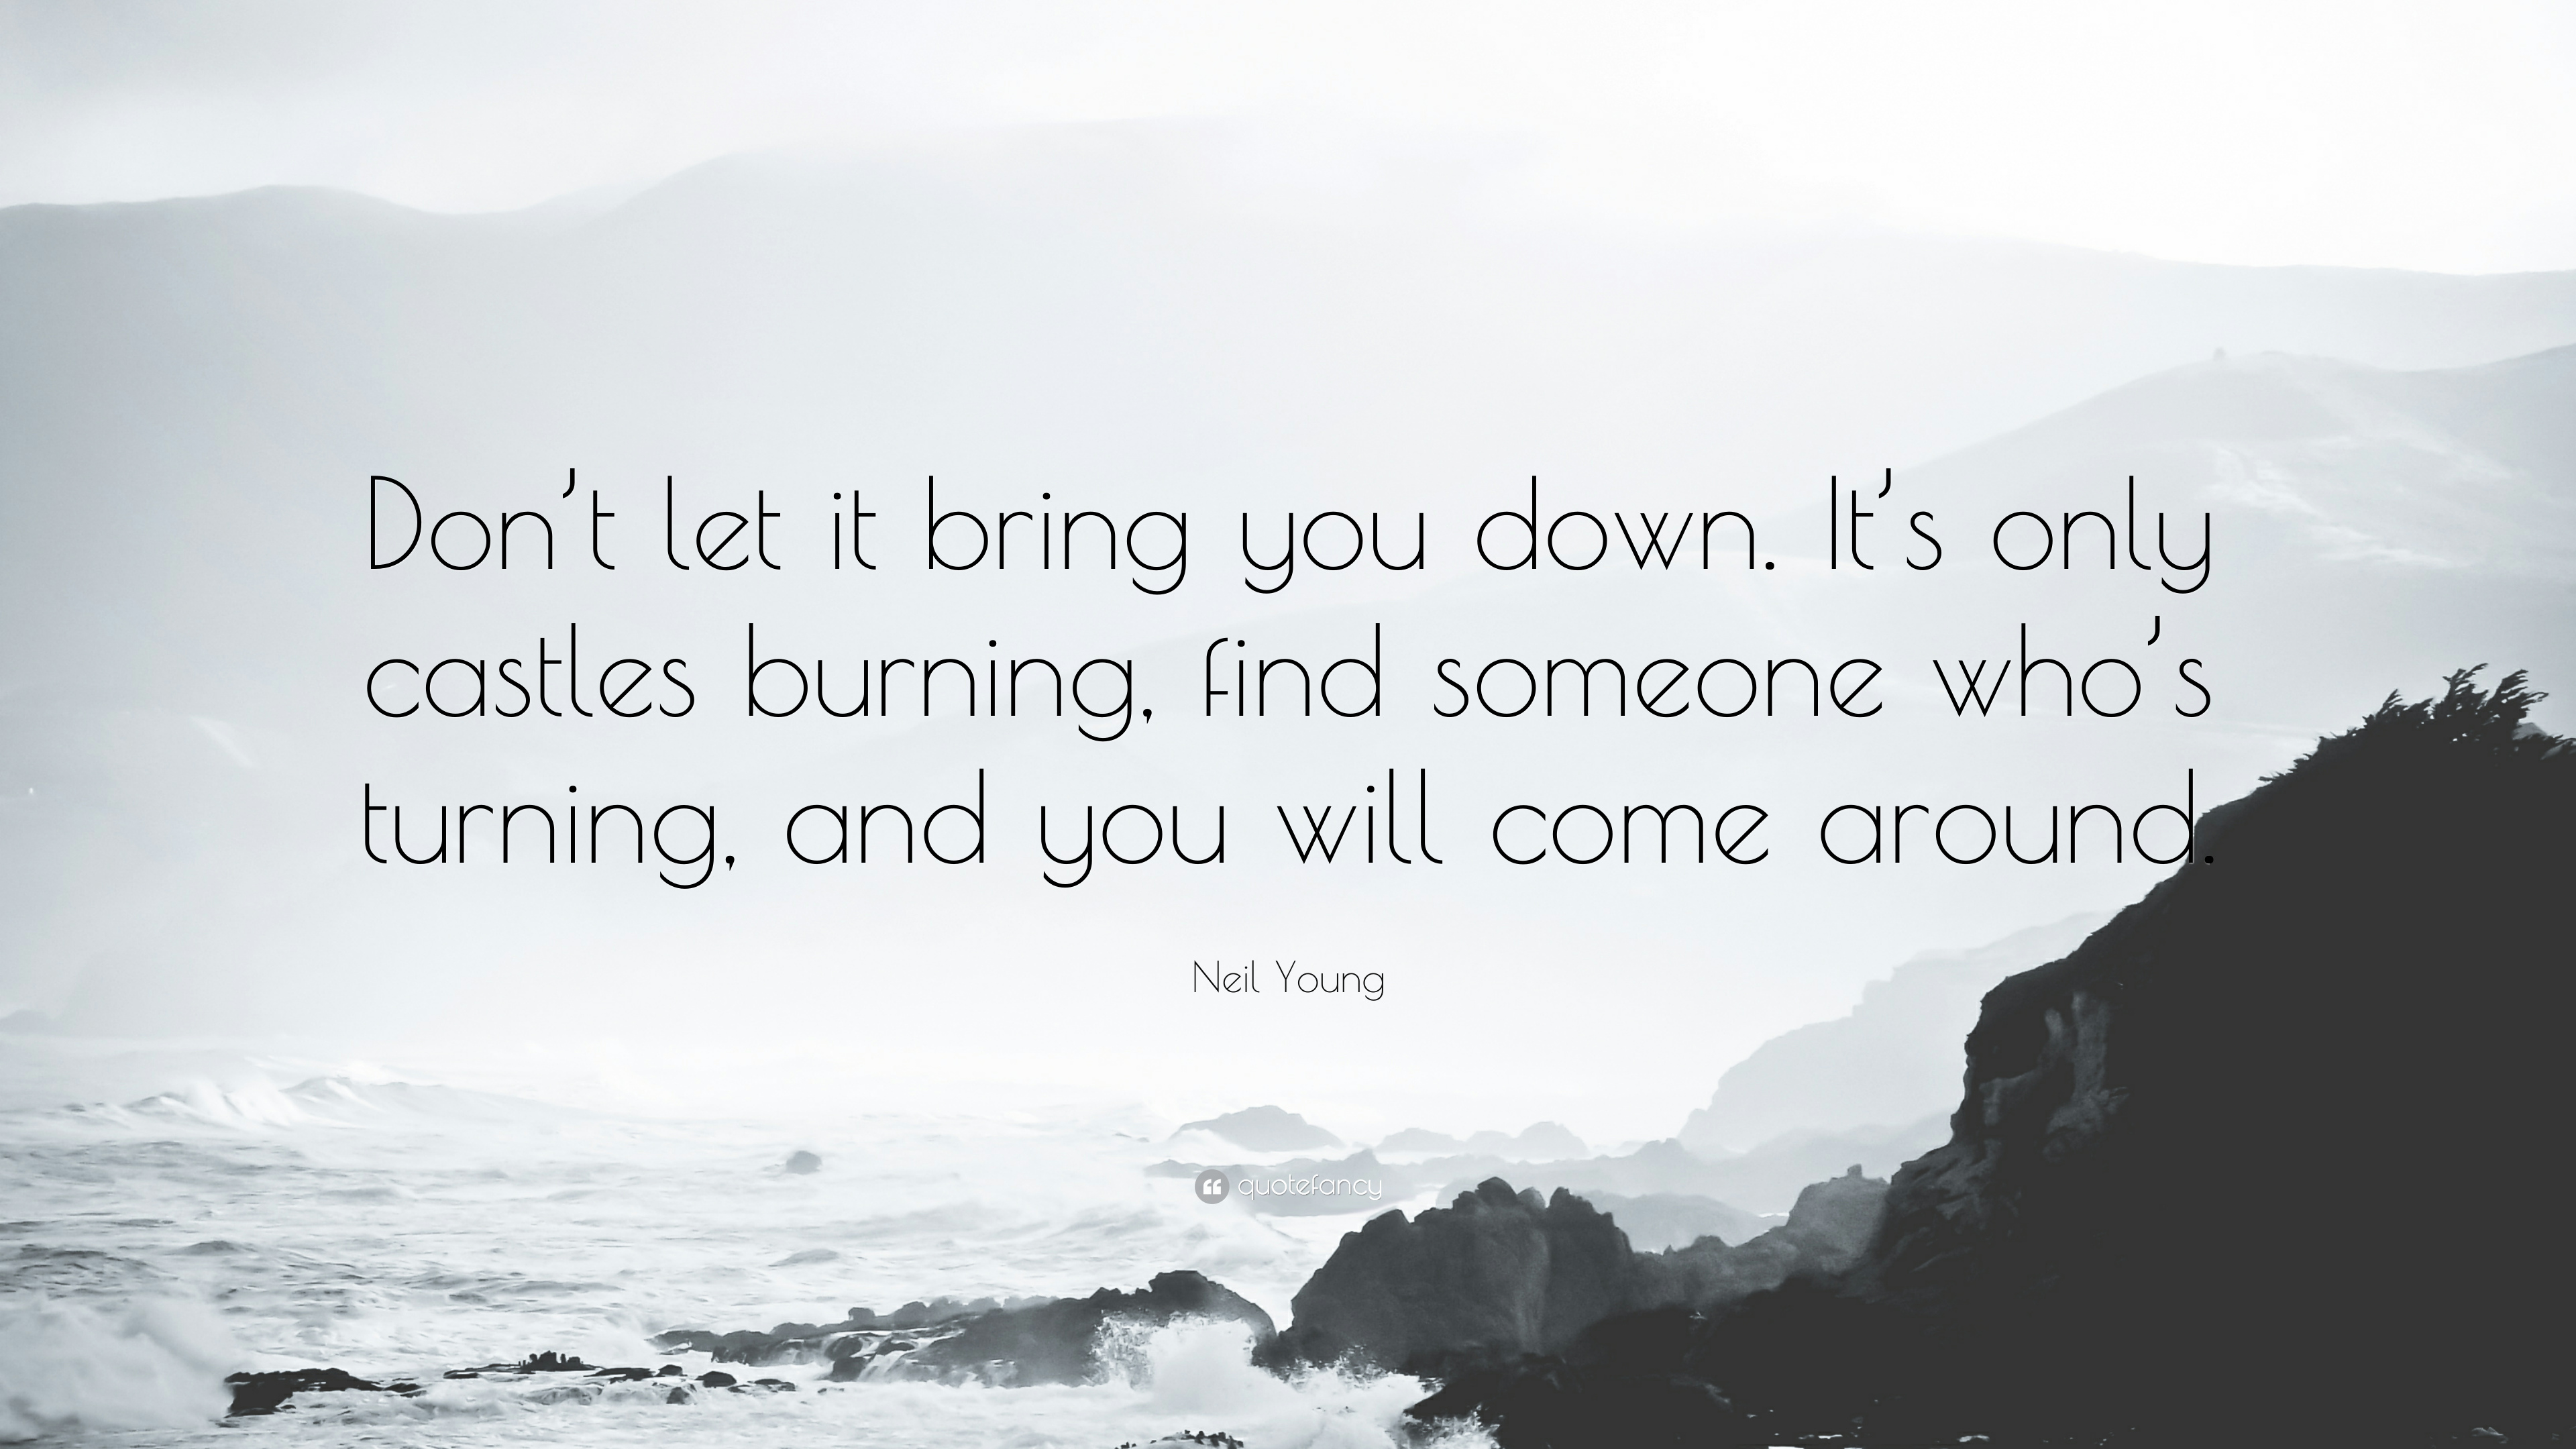 Neil Young Quote Dont Let It Bring You Down Its Only Castles